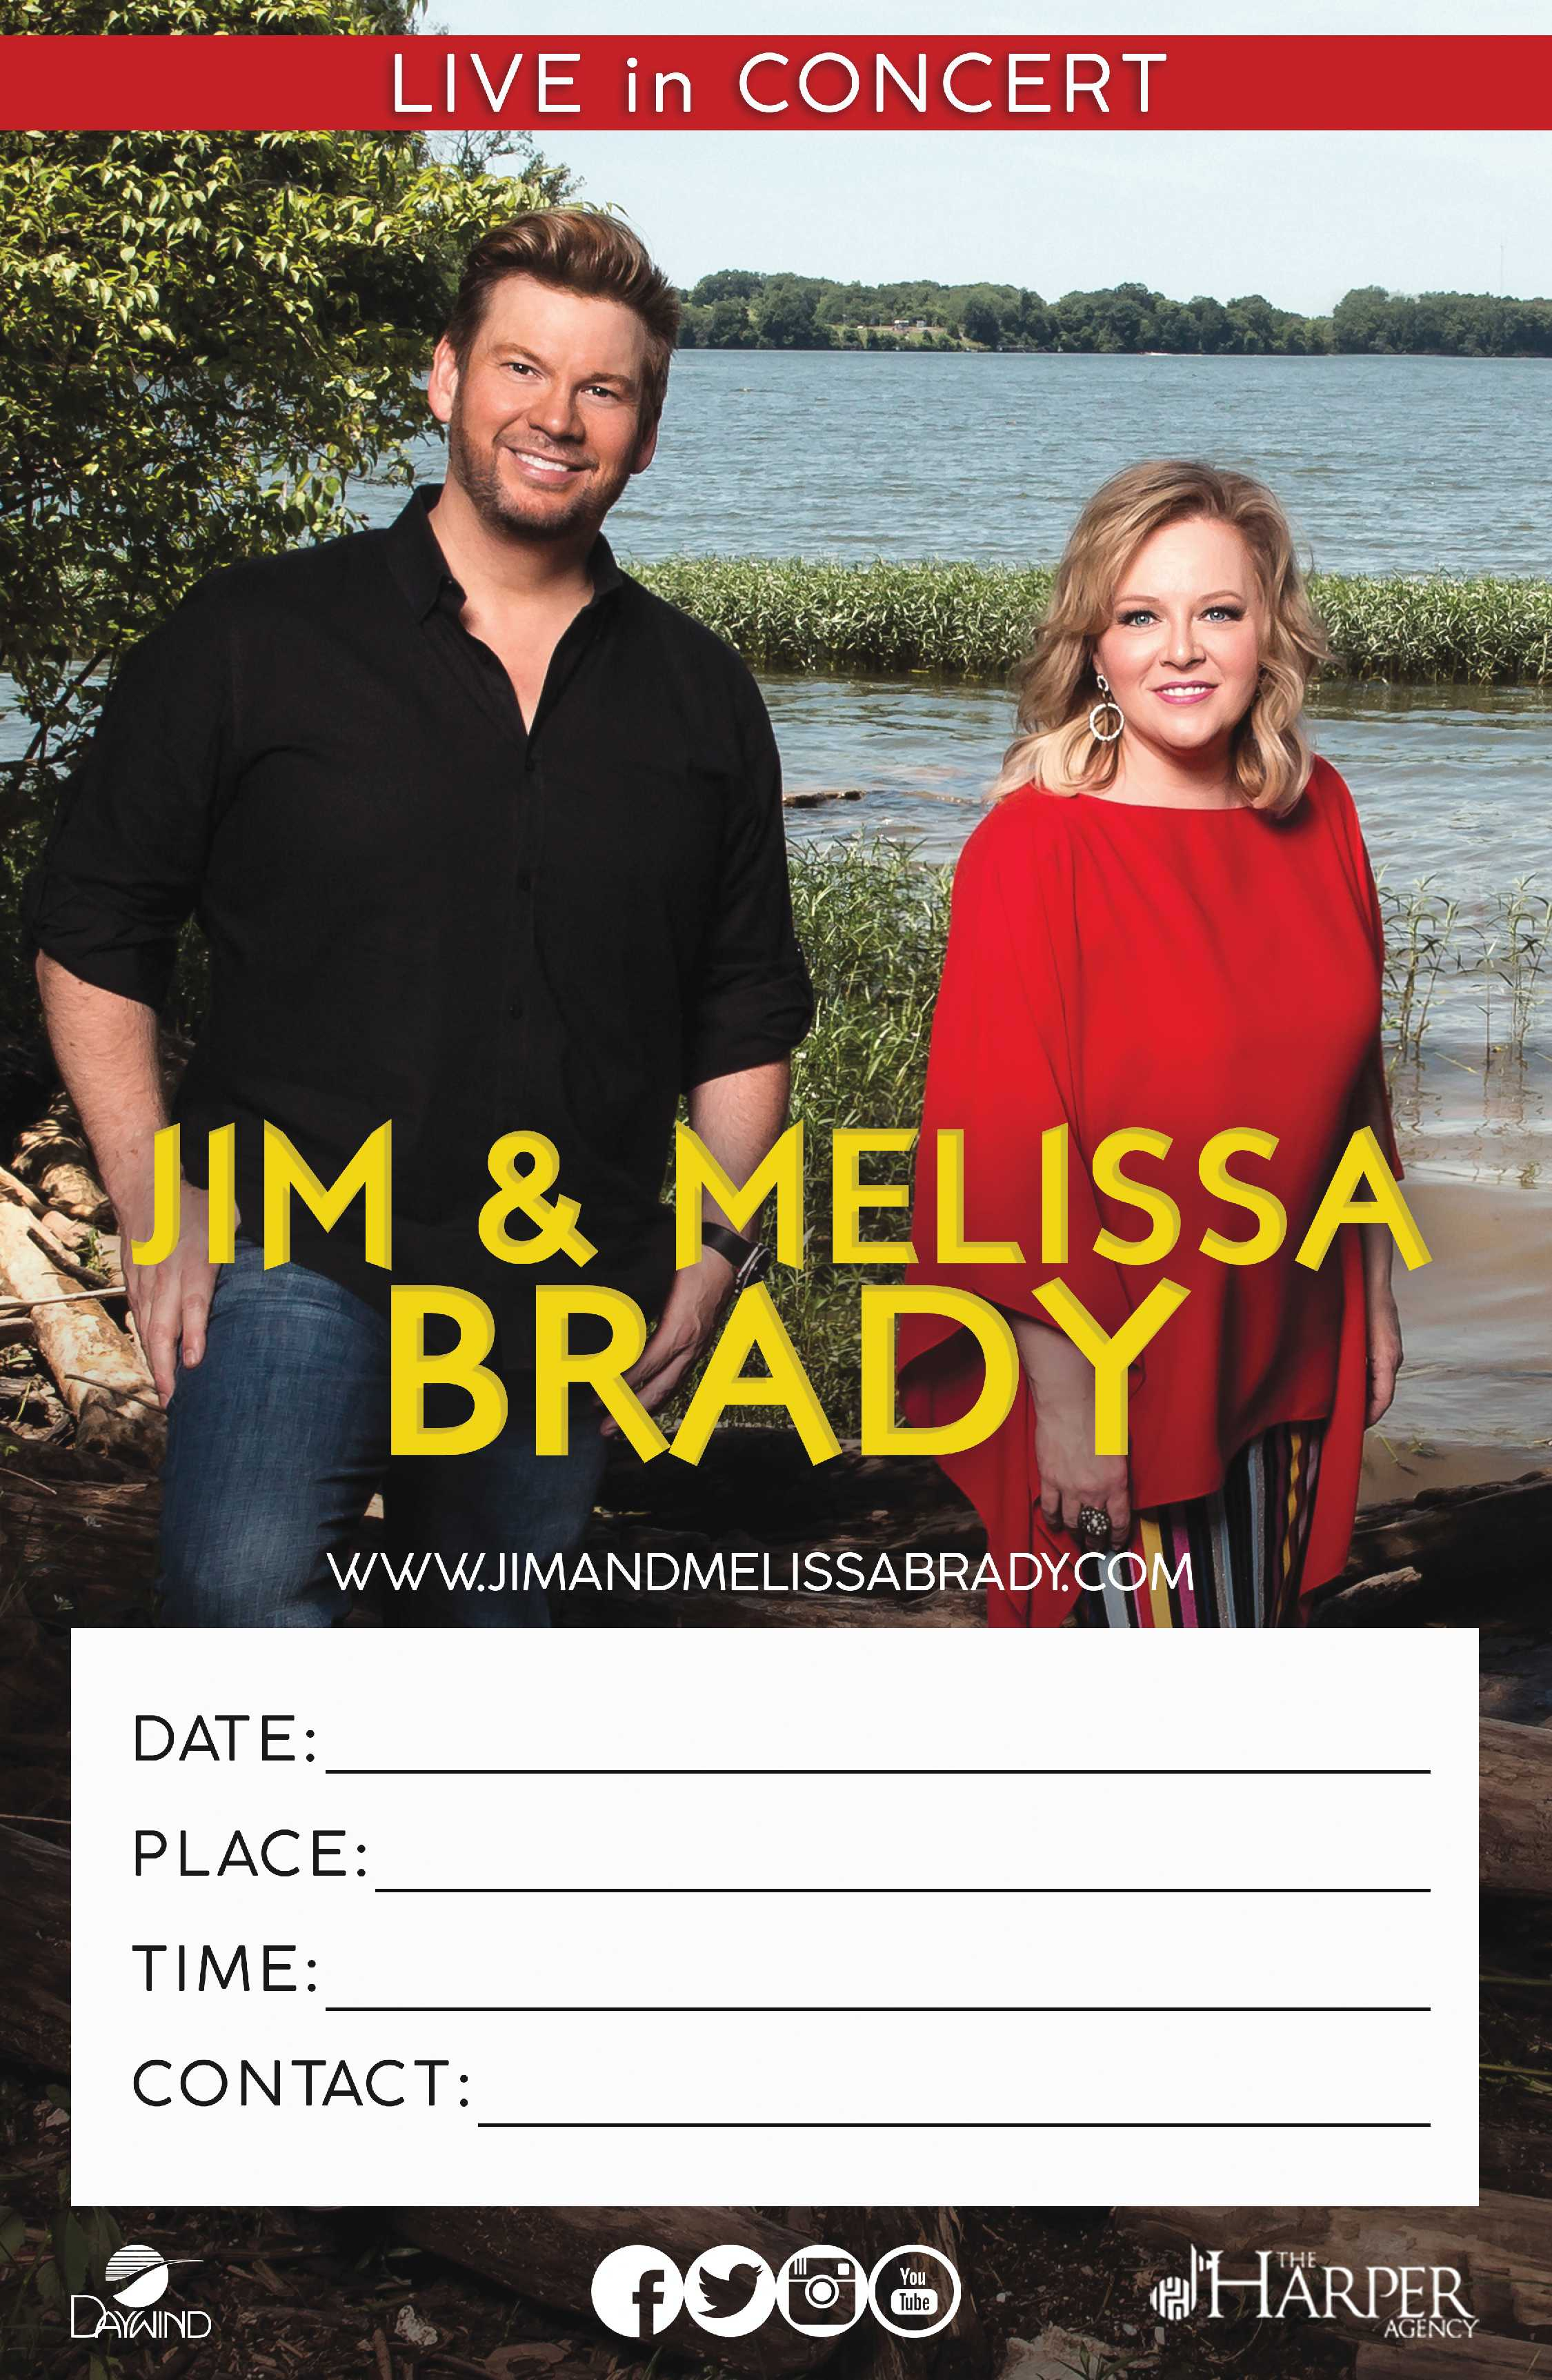 Jim and Melissa Brady | 11 x 17 Concert Poster